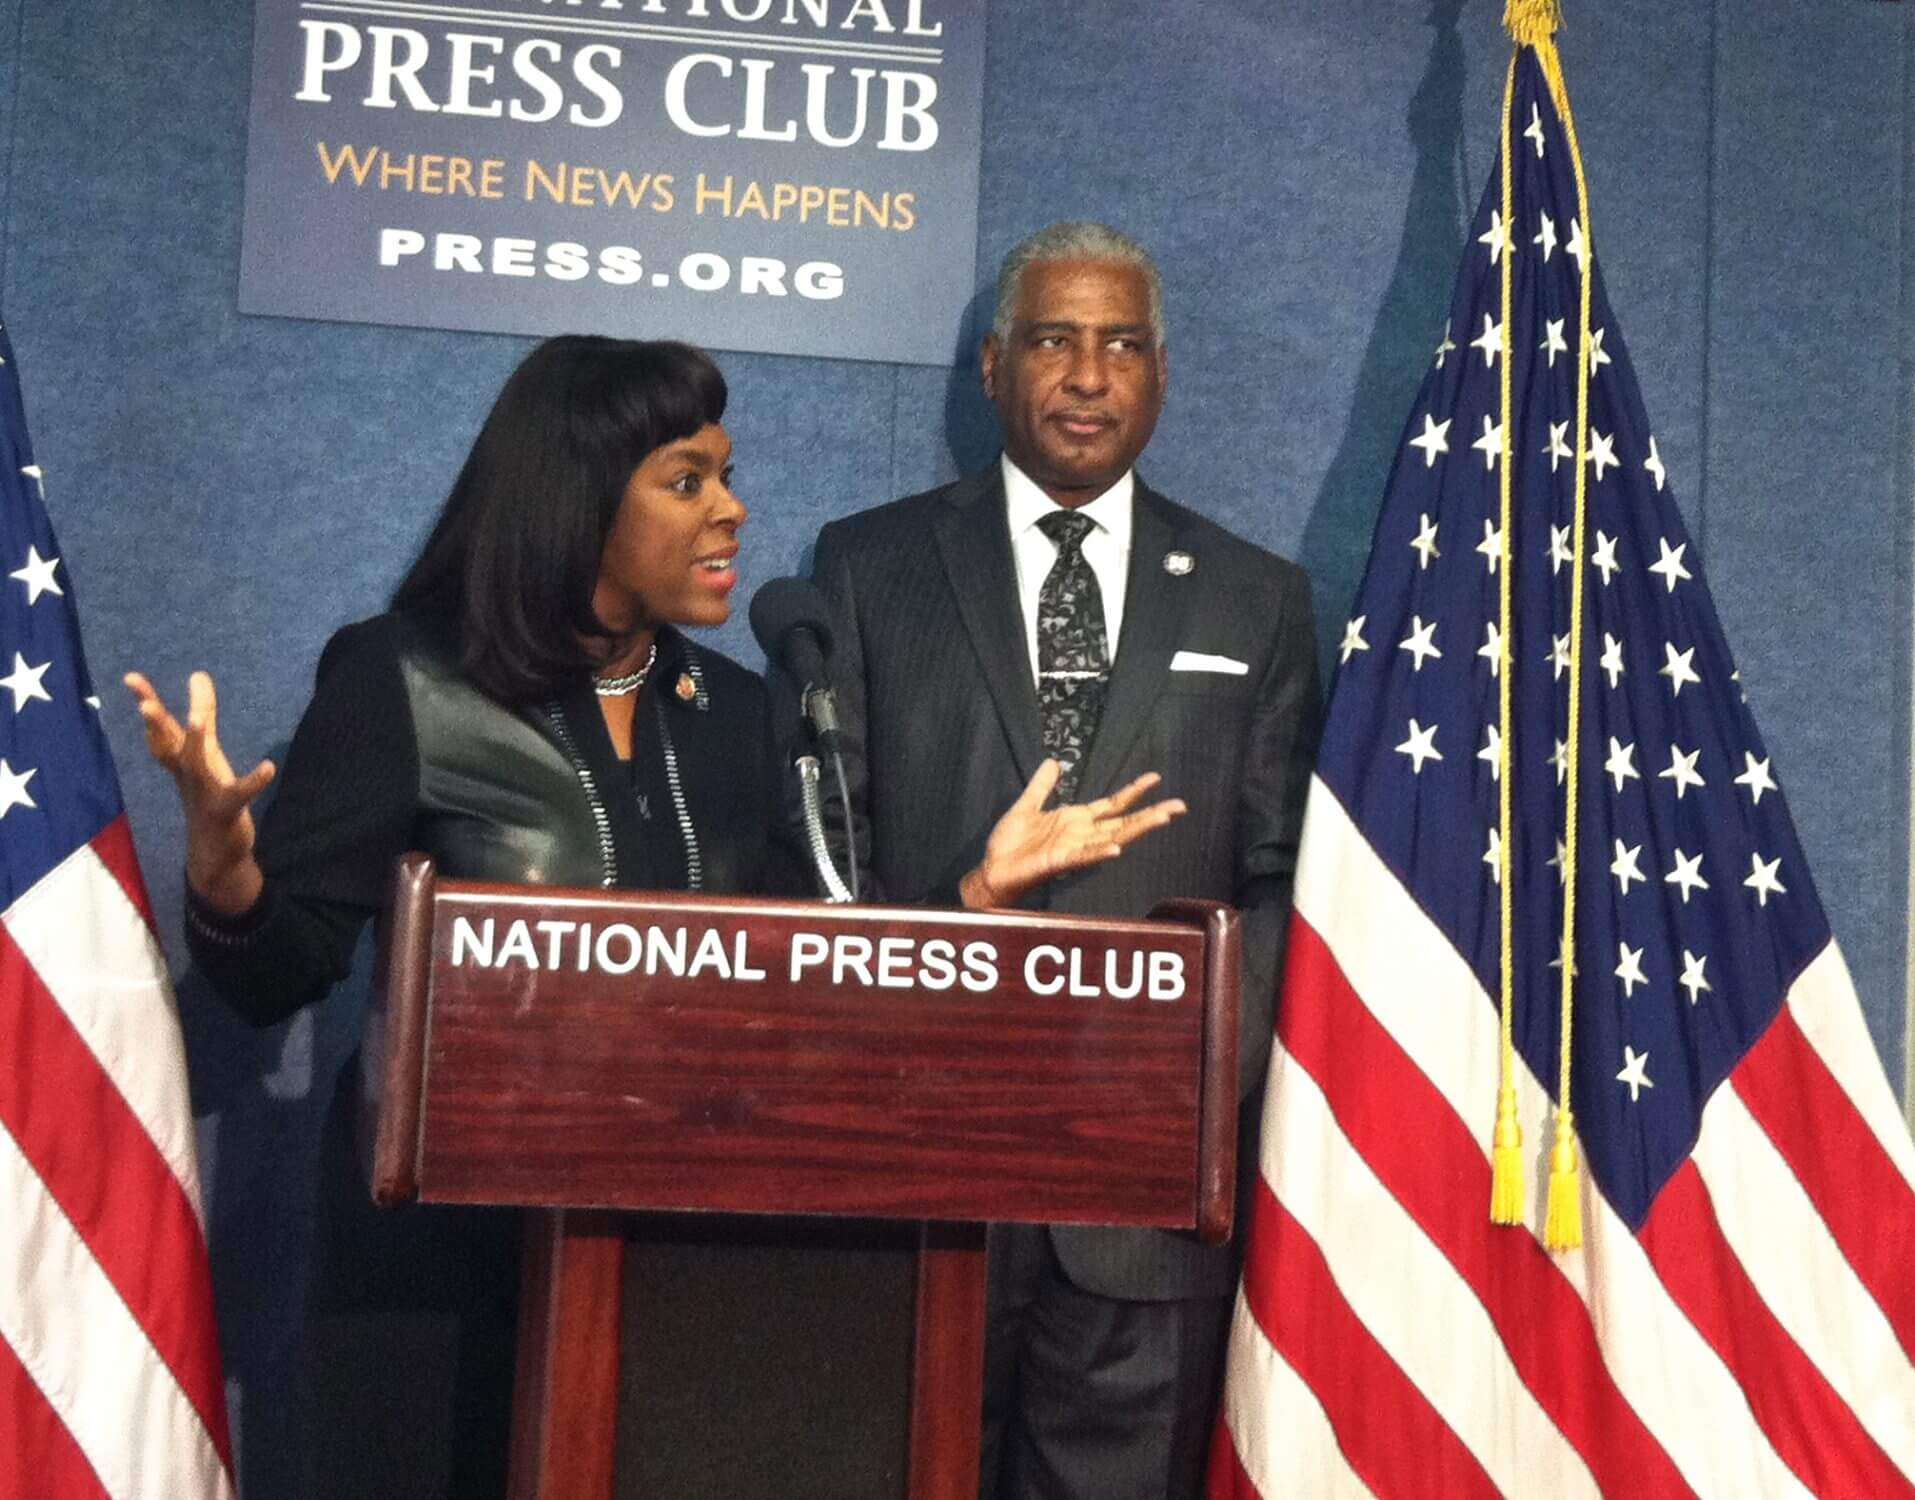 Congressional honors sought for 'Birmingham 4' hate crime victims